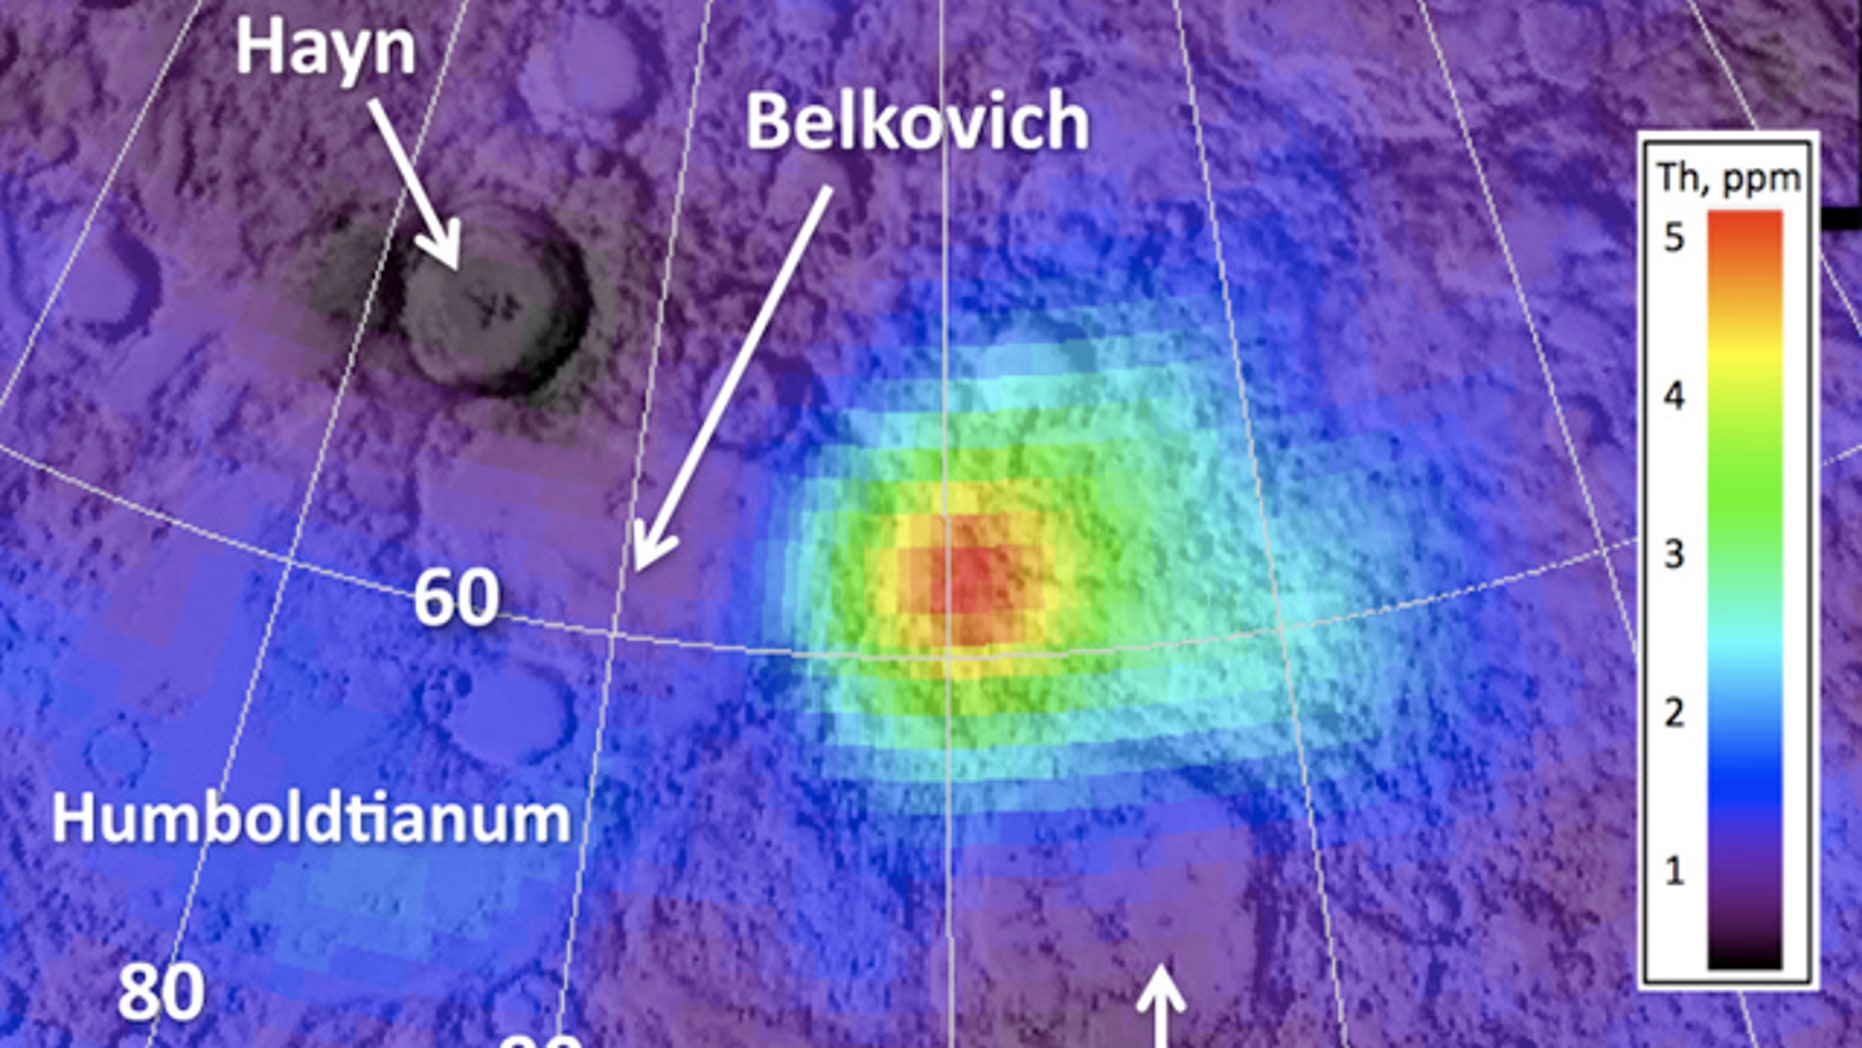 This image from NASA's Lunar Reconnaissance Orbiter shows a region on the far side of the moon between the Compton and Belkovich craters. The colored region marks a high amount of the mineral thorium, which is thought to have been deposited by rare silicate volcanoes in the past.